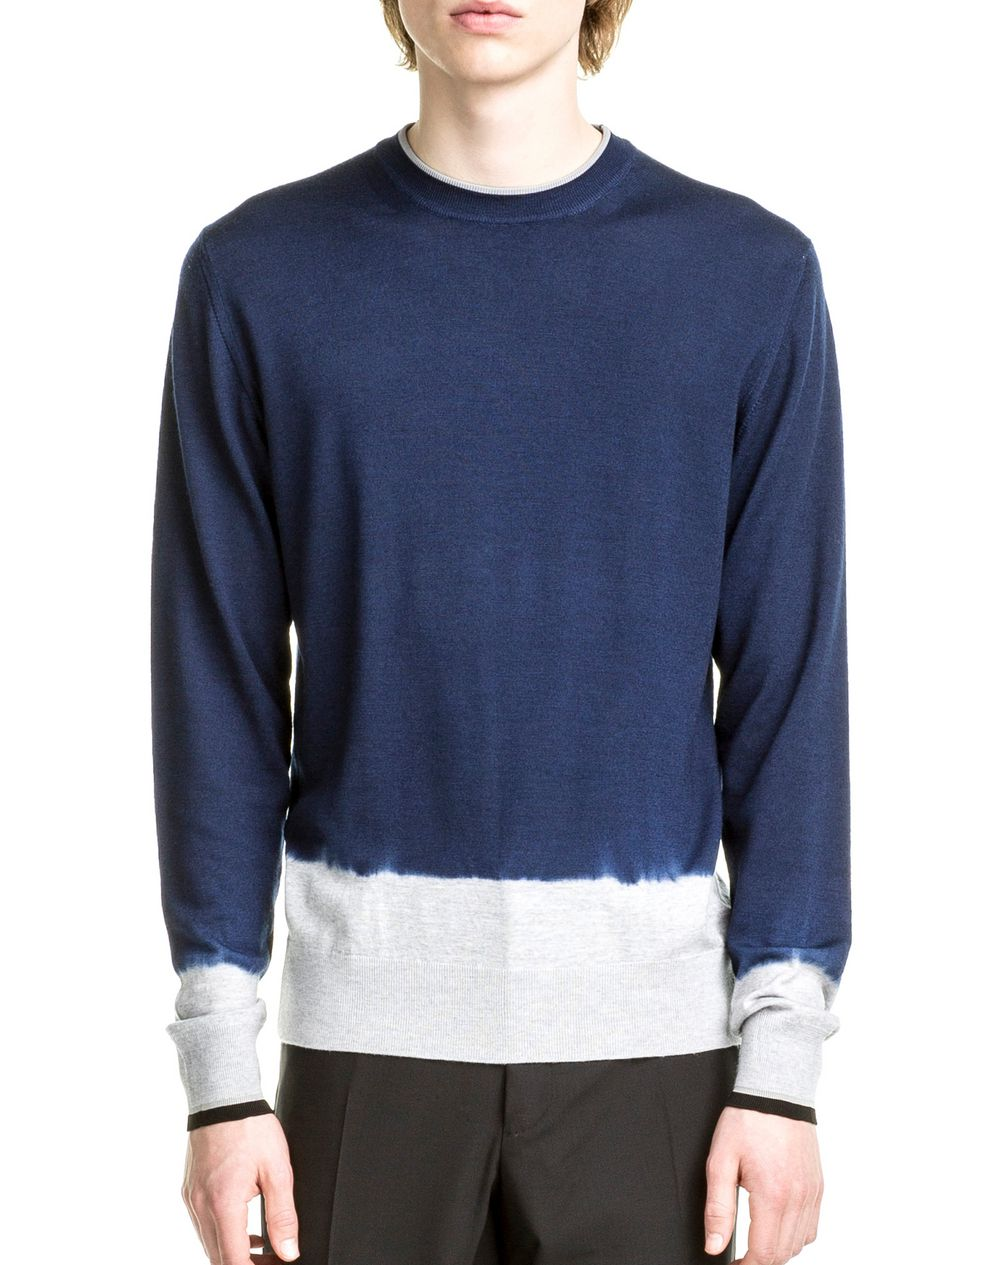 KNITWEAR - Jumpers Lanvin In China Online Clearance Clearance Store GunMToDP2